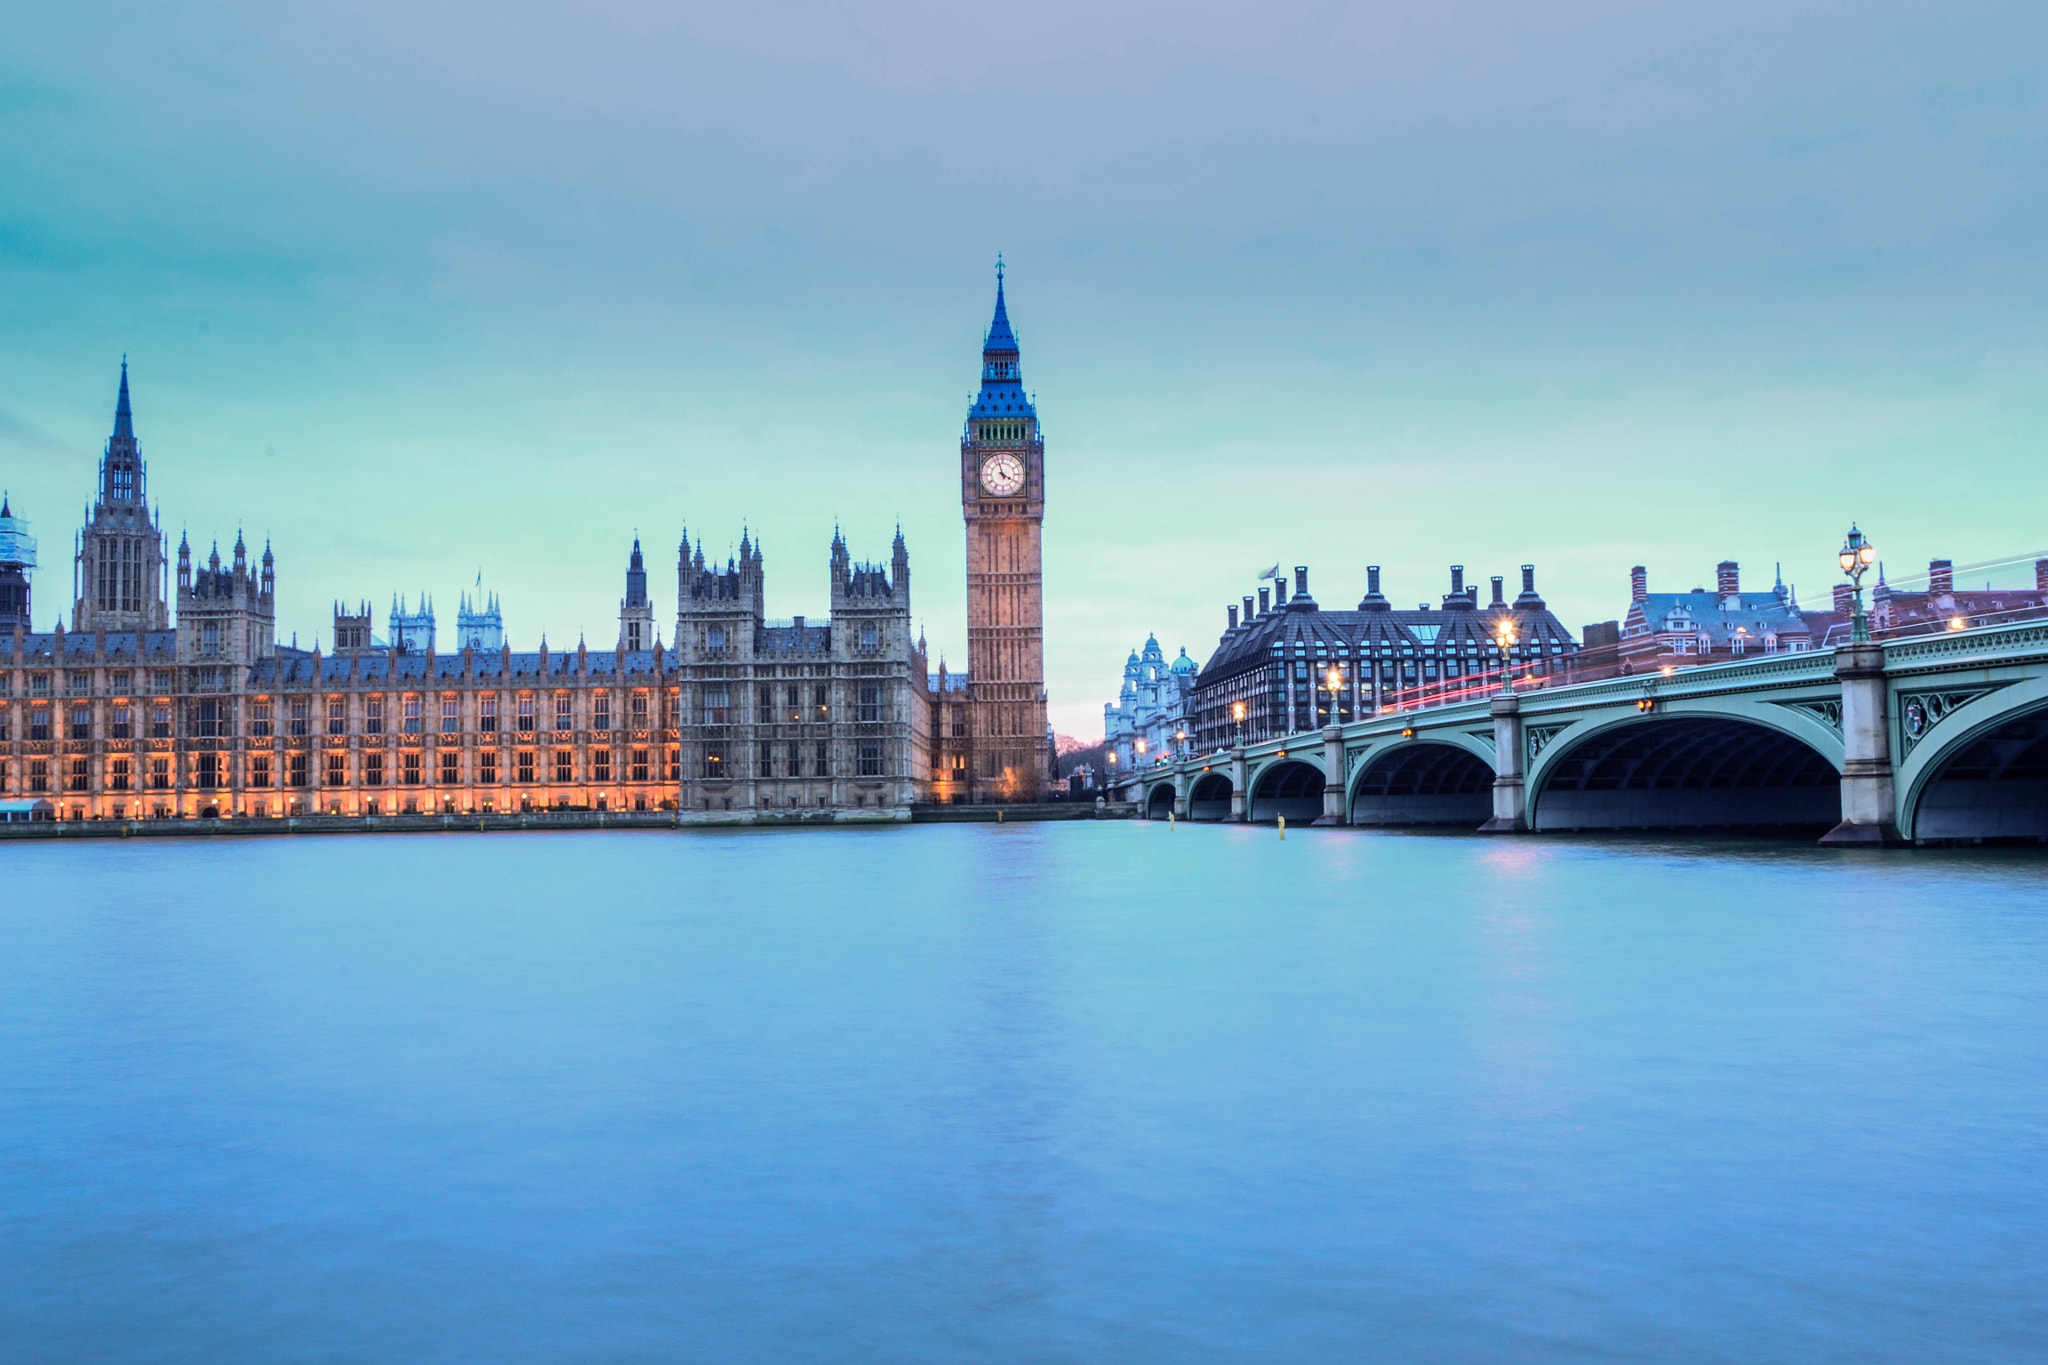 Photograph Westminster! by Soumya Dutta on 500px